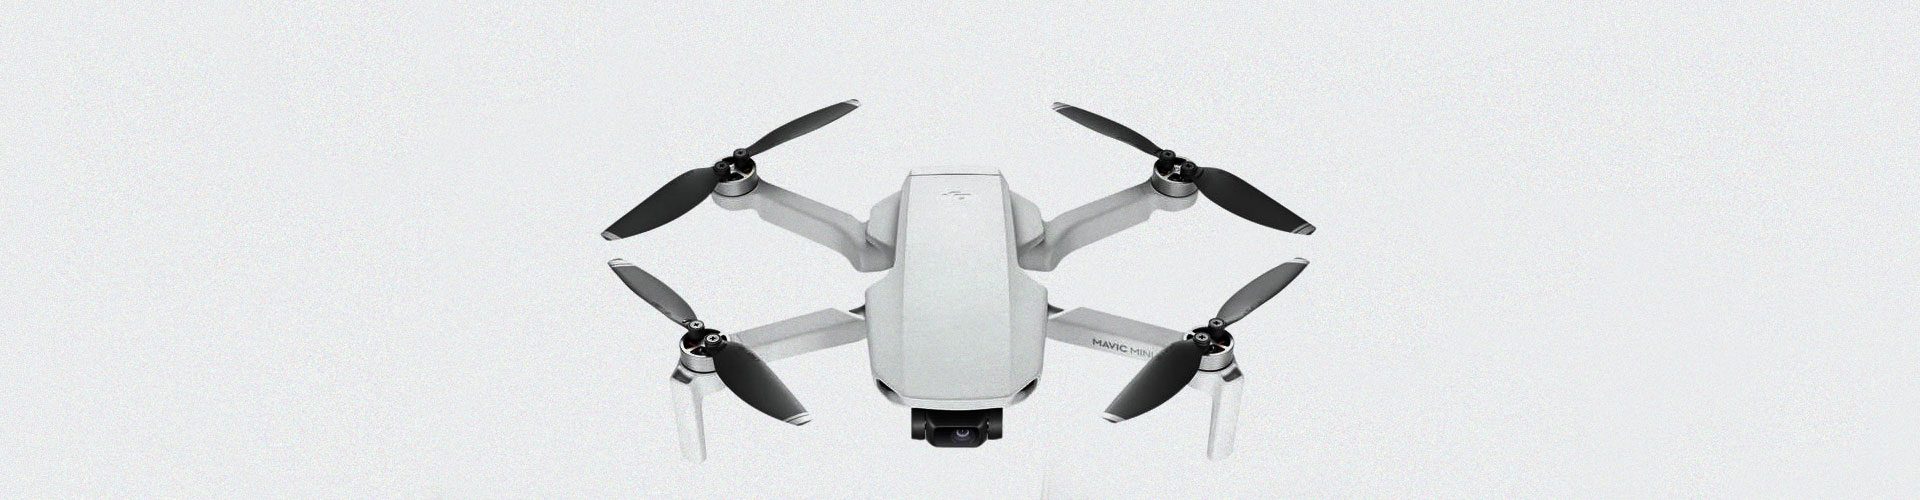 In Commercial Drone Hire